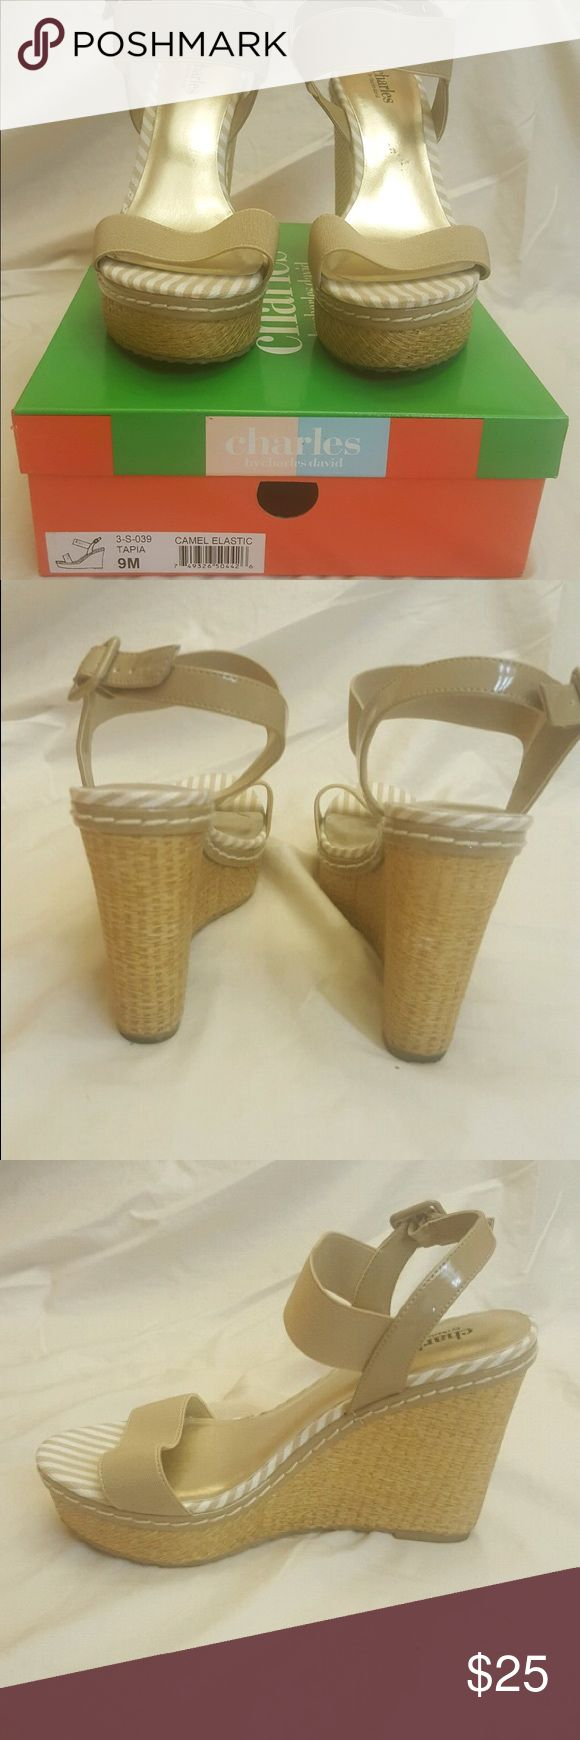 Charles David Tapia Wedges Camel Espadrille Wedges. 4.5 inch heel. Very good condition. With box. Charles David Shoes Wedges